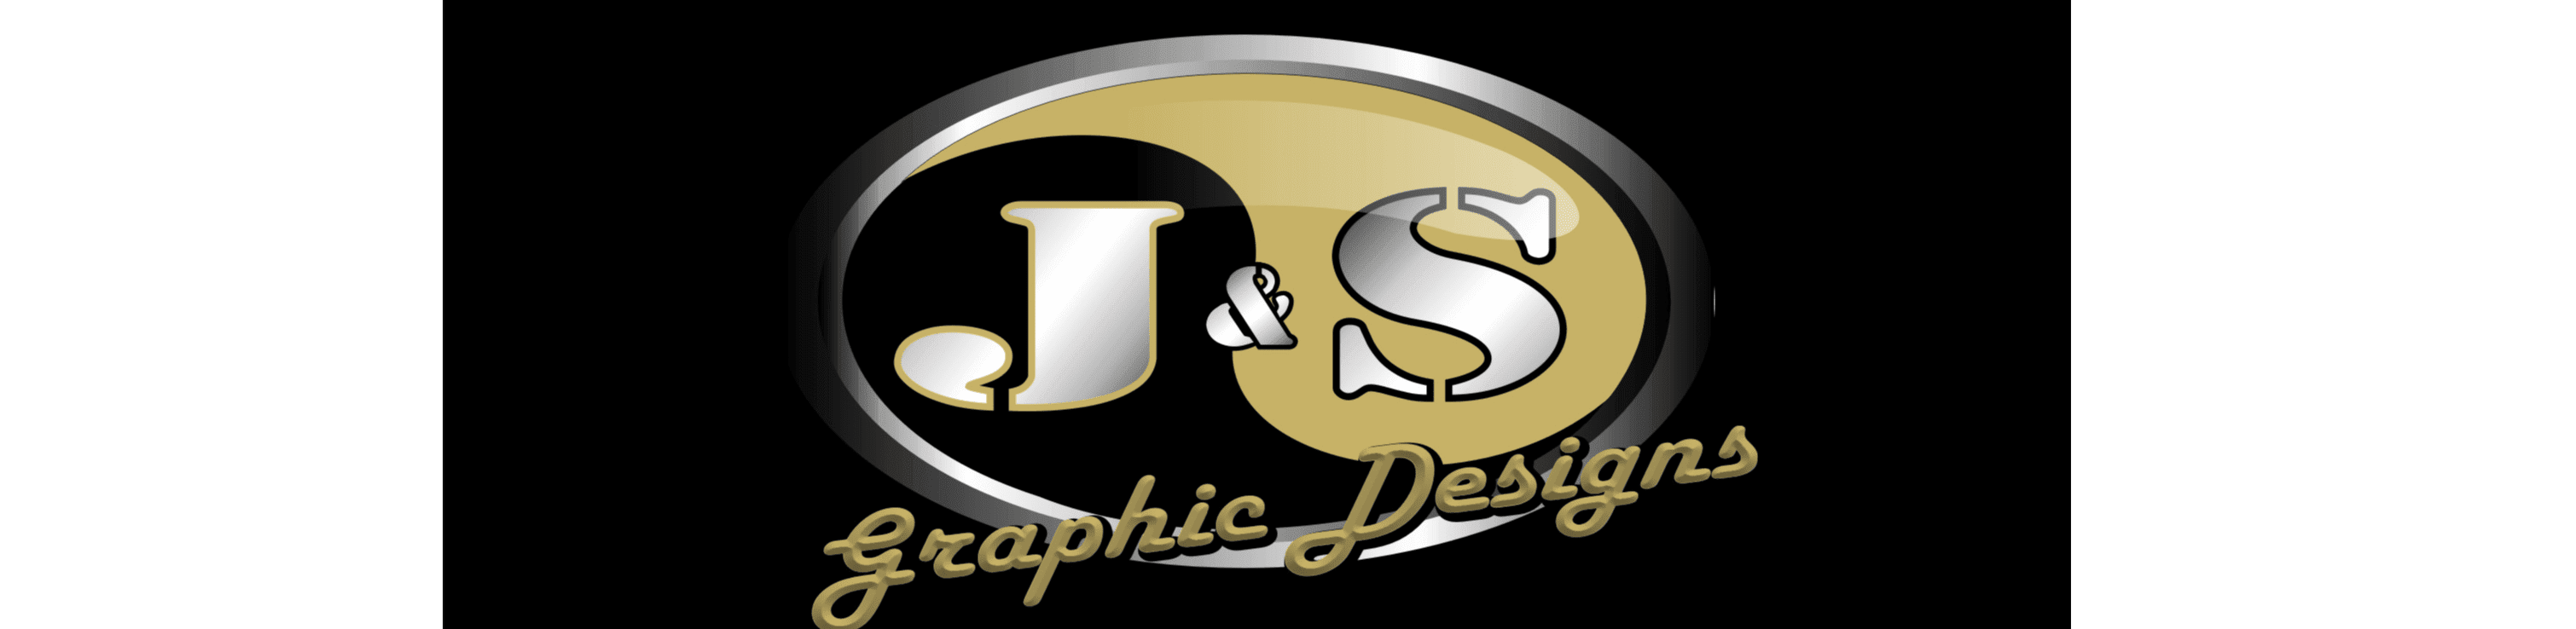 J&S Graphic Designs